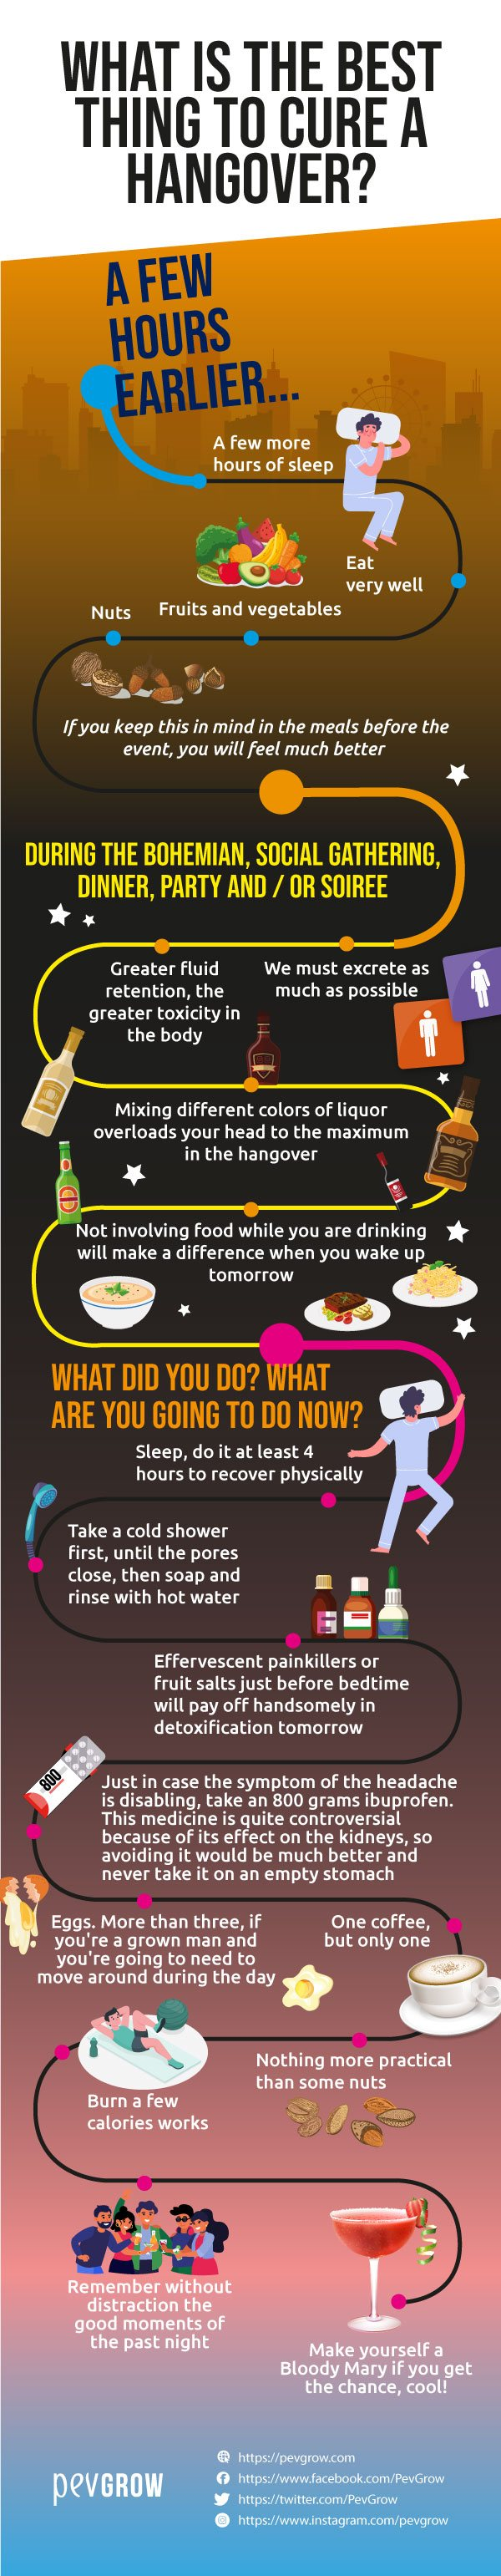 Infographics of what is best for curing a hangover